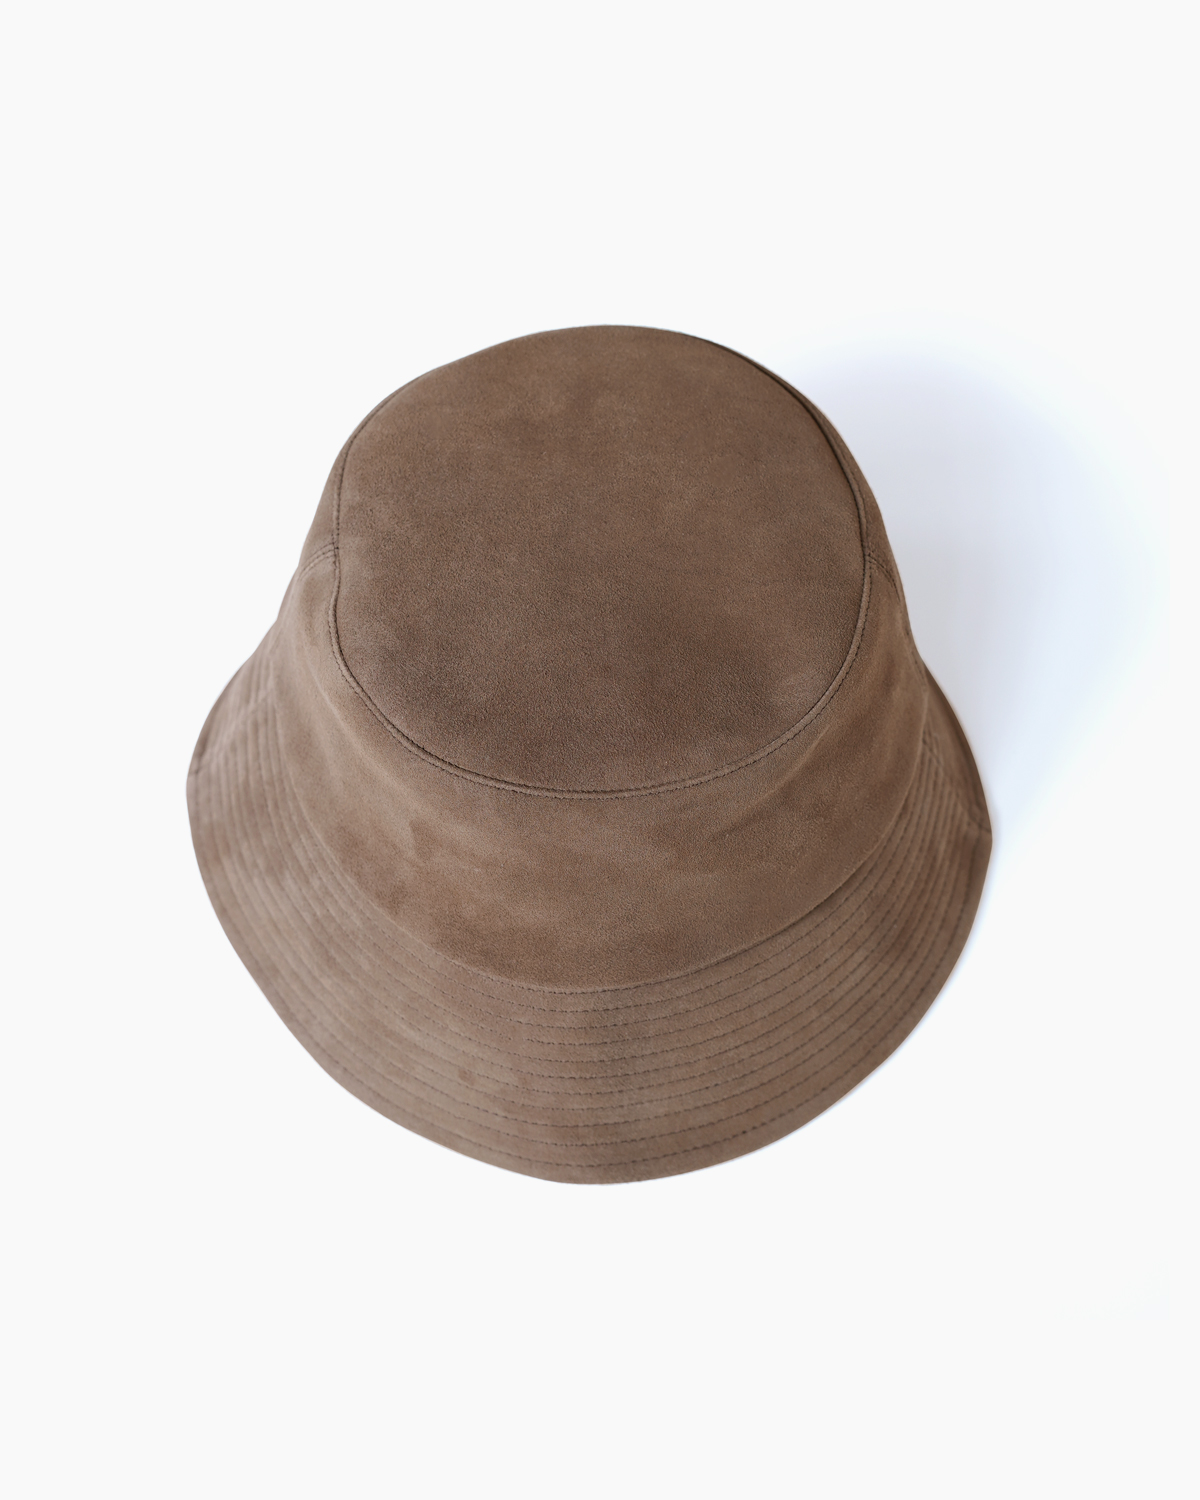 SHEEP SUEDE HAT – Light Brown|COMESANDGOES